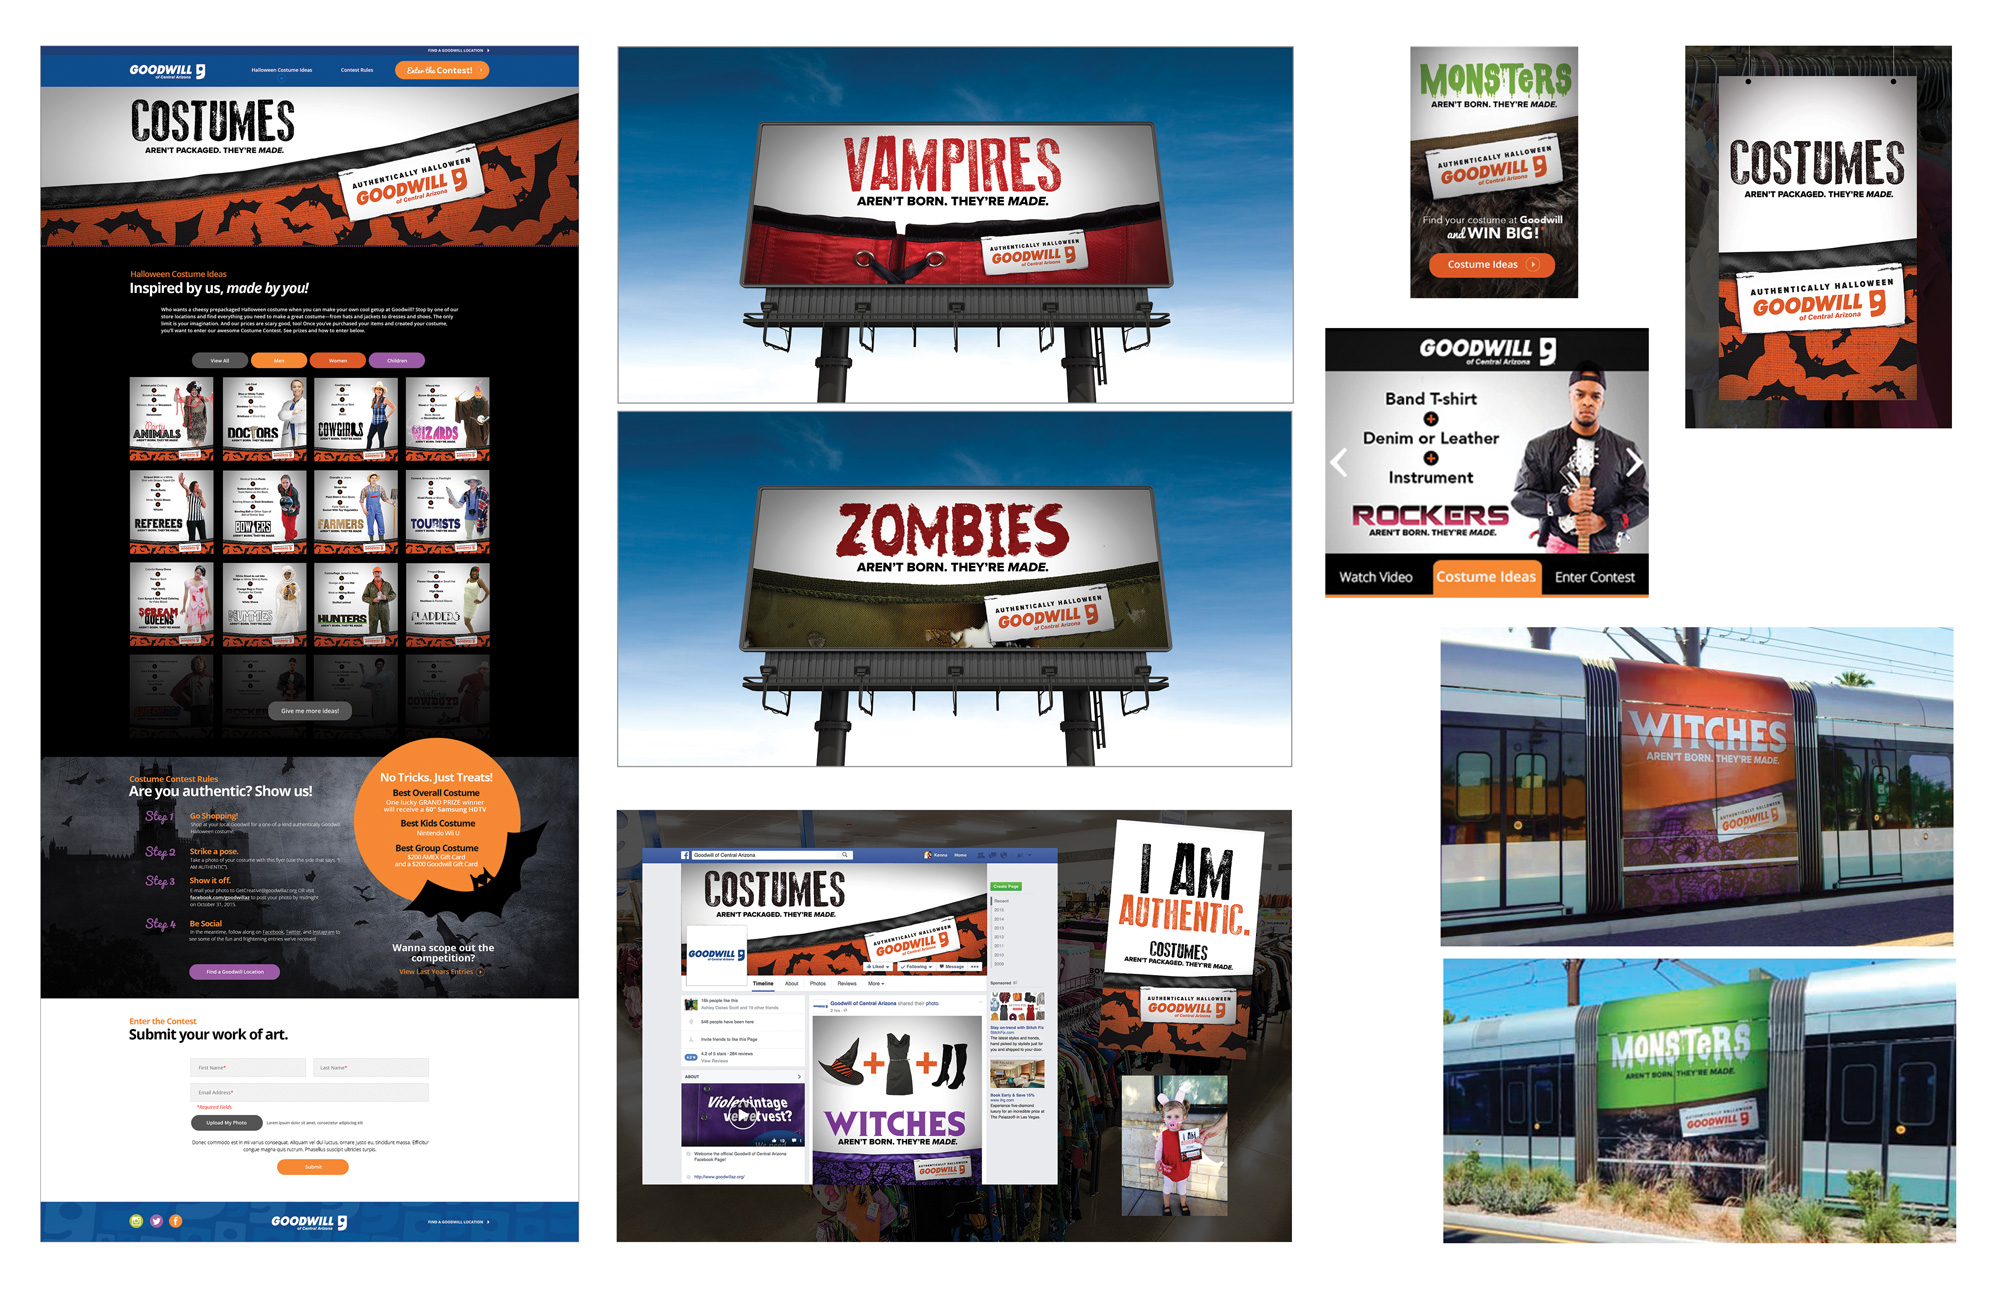 Goodwill Halloween Campaign Layout